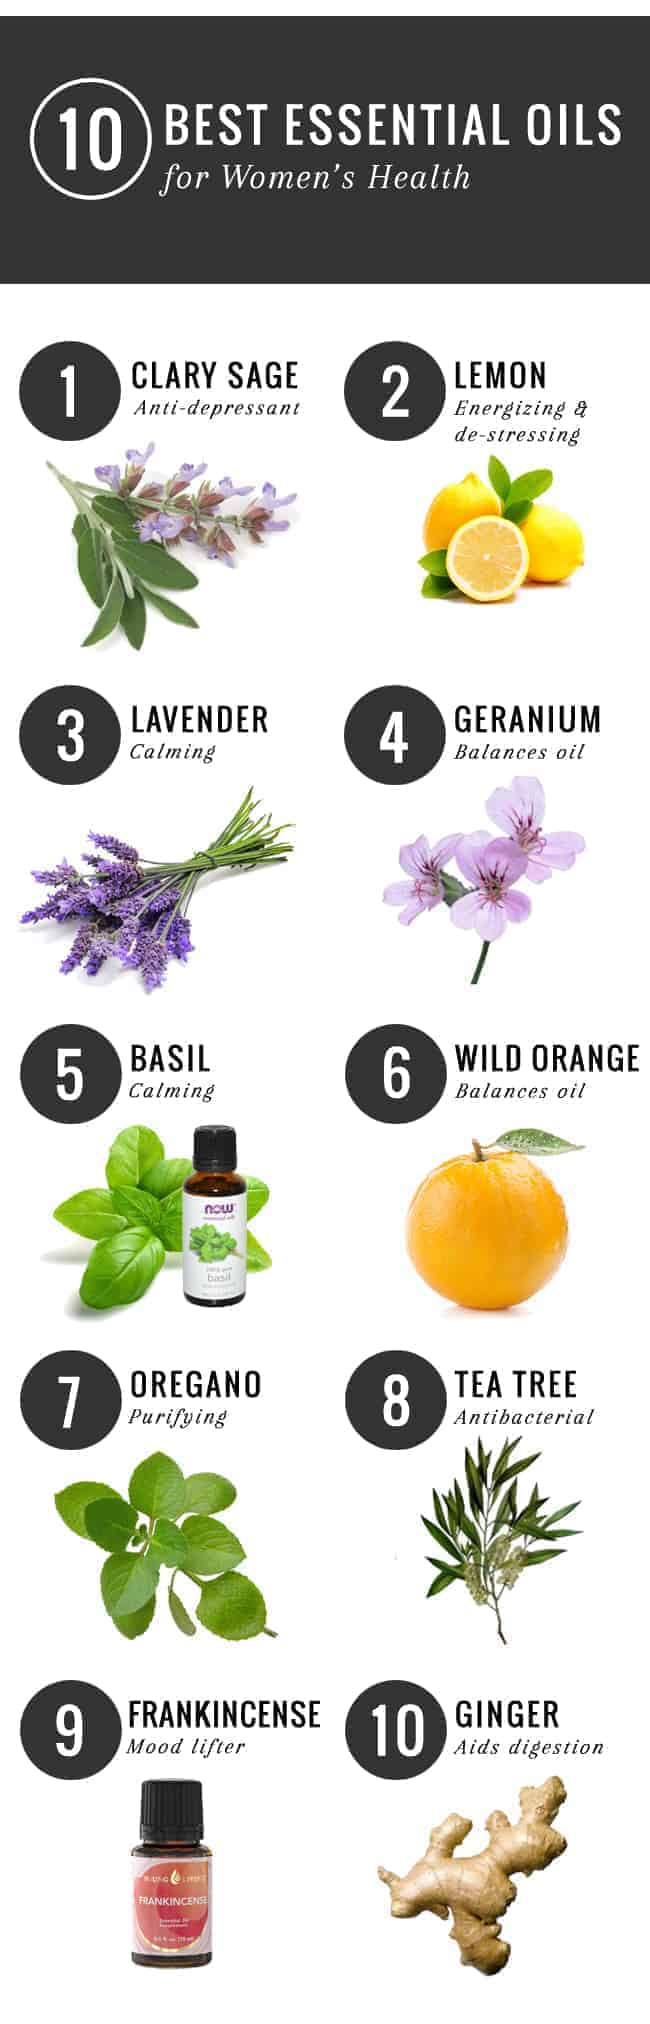 10 Best Essential Oils for Women's Health | Henry Happened